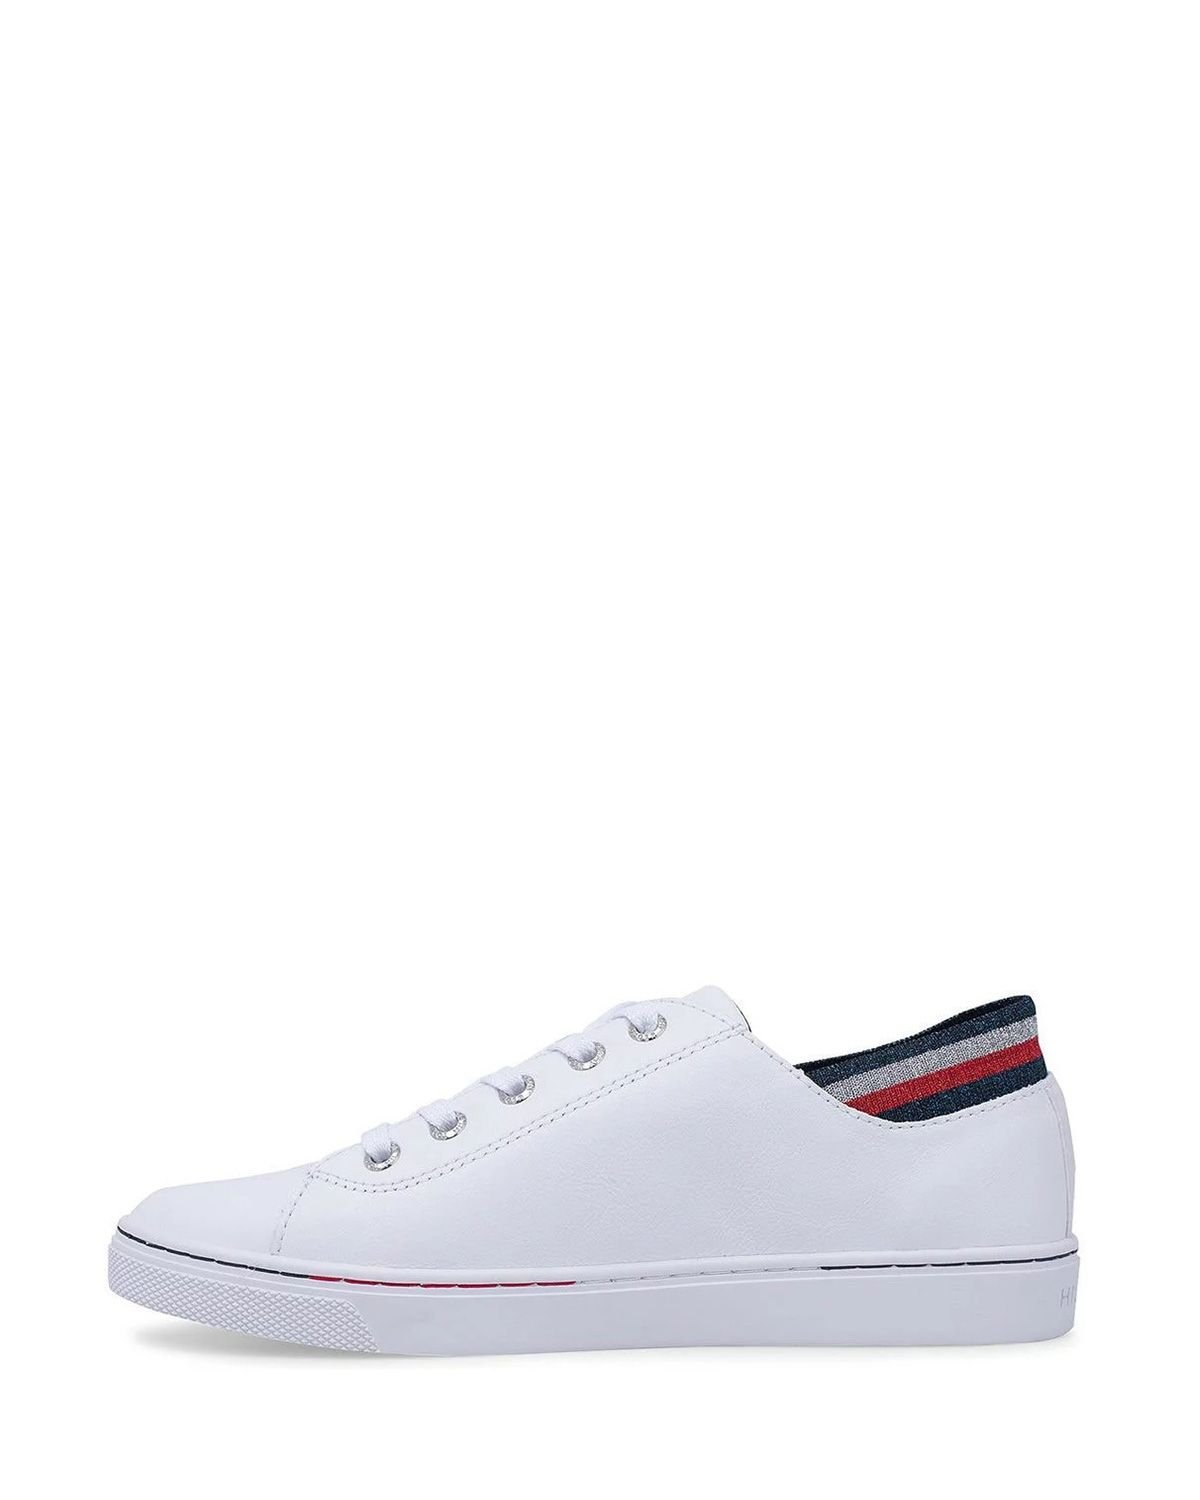 Tommy Hilfiger Glitter Detail City Sneaker FW0FW04705 White